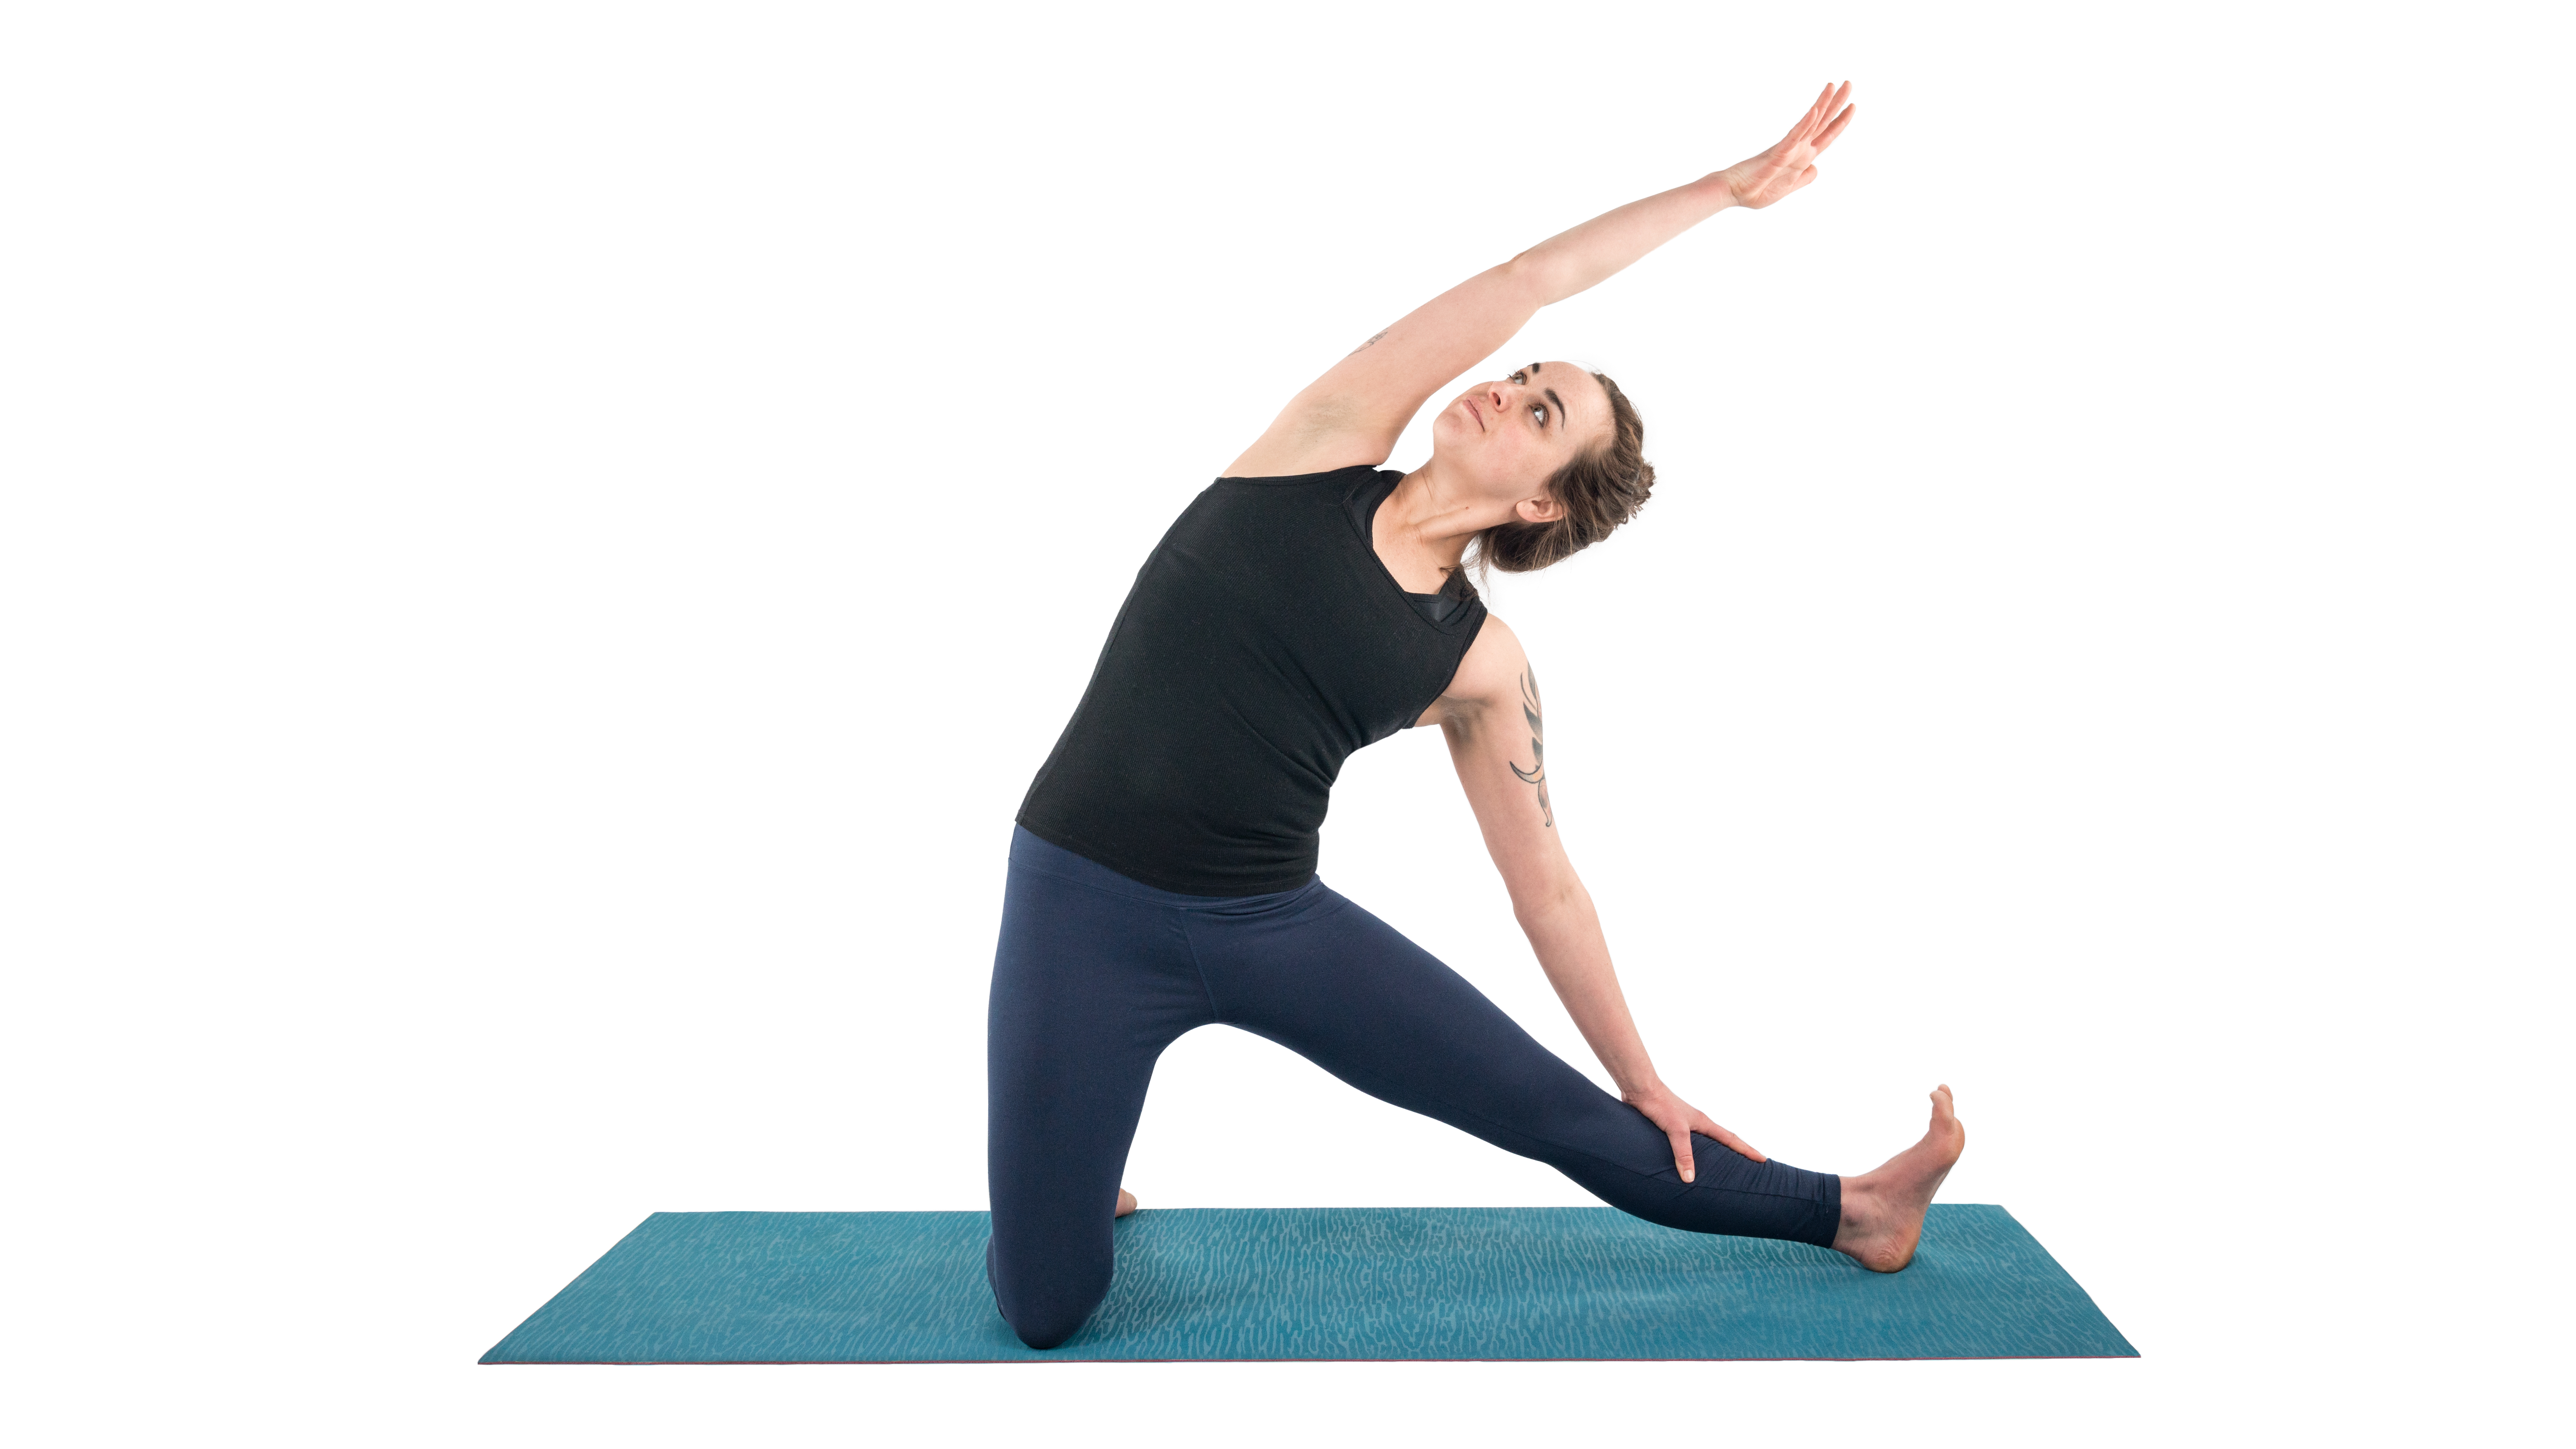 Parighasana, Gate Pose, Gate Latch Pose, gentle backbend, lateral bending pose, backbend prep pose